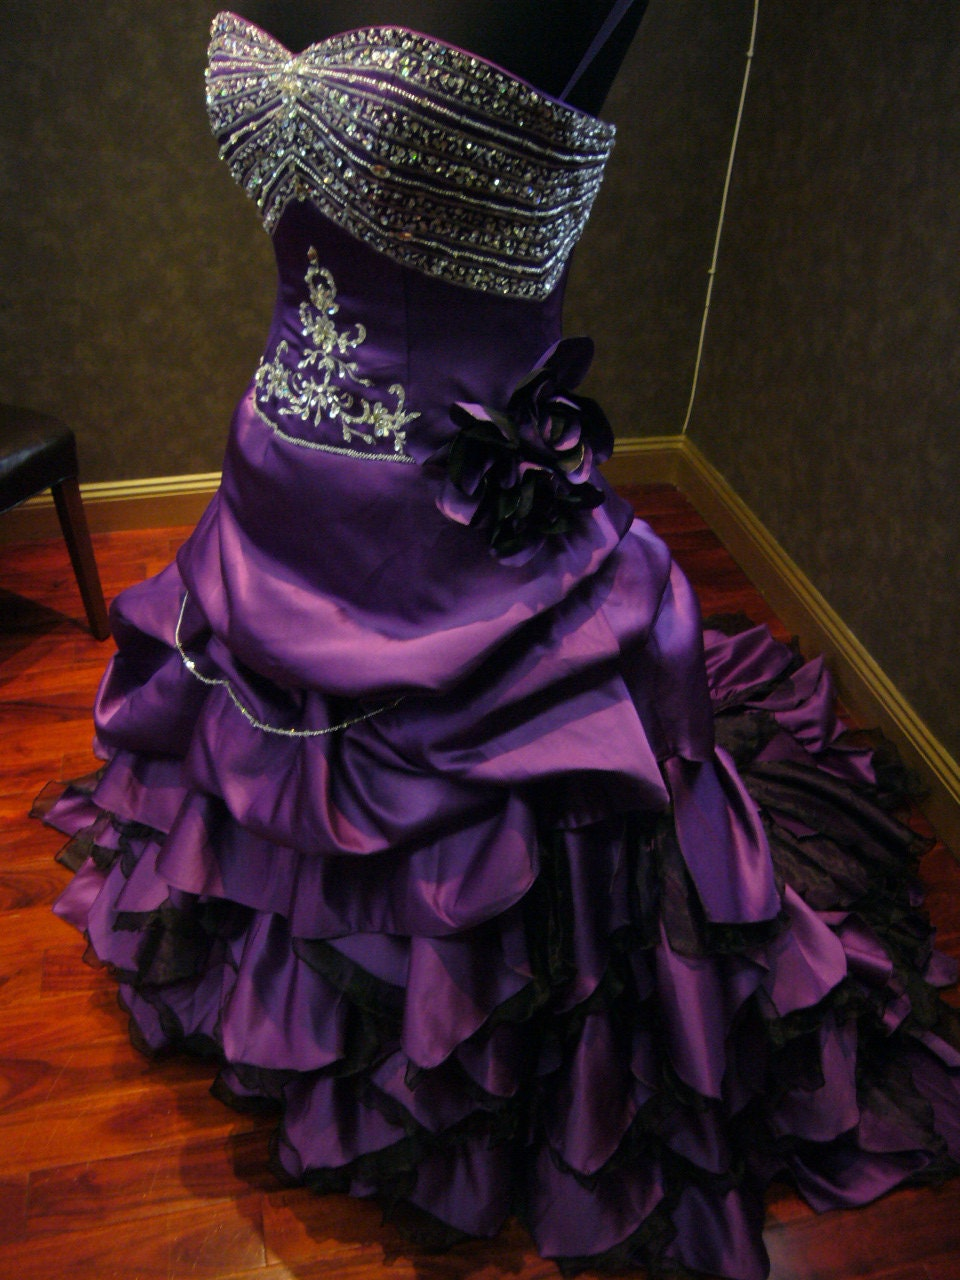 Breathtaking royal purple wedding dress by weddingdressfantasy for Royal purple and white wedding dress